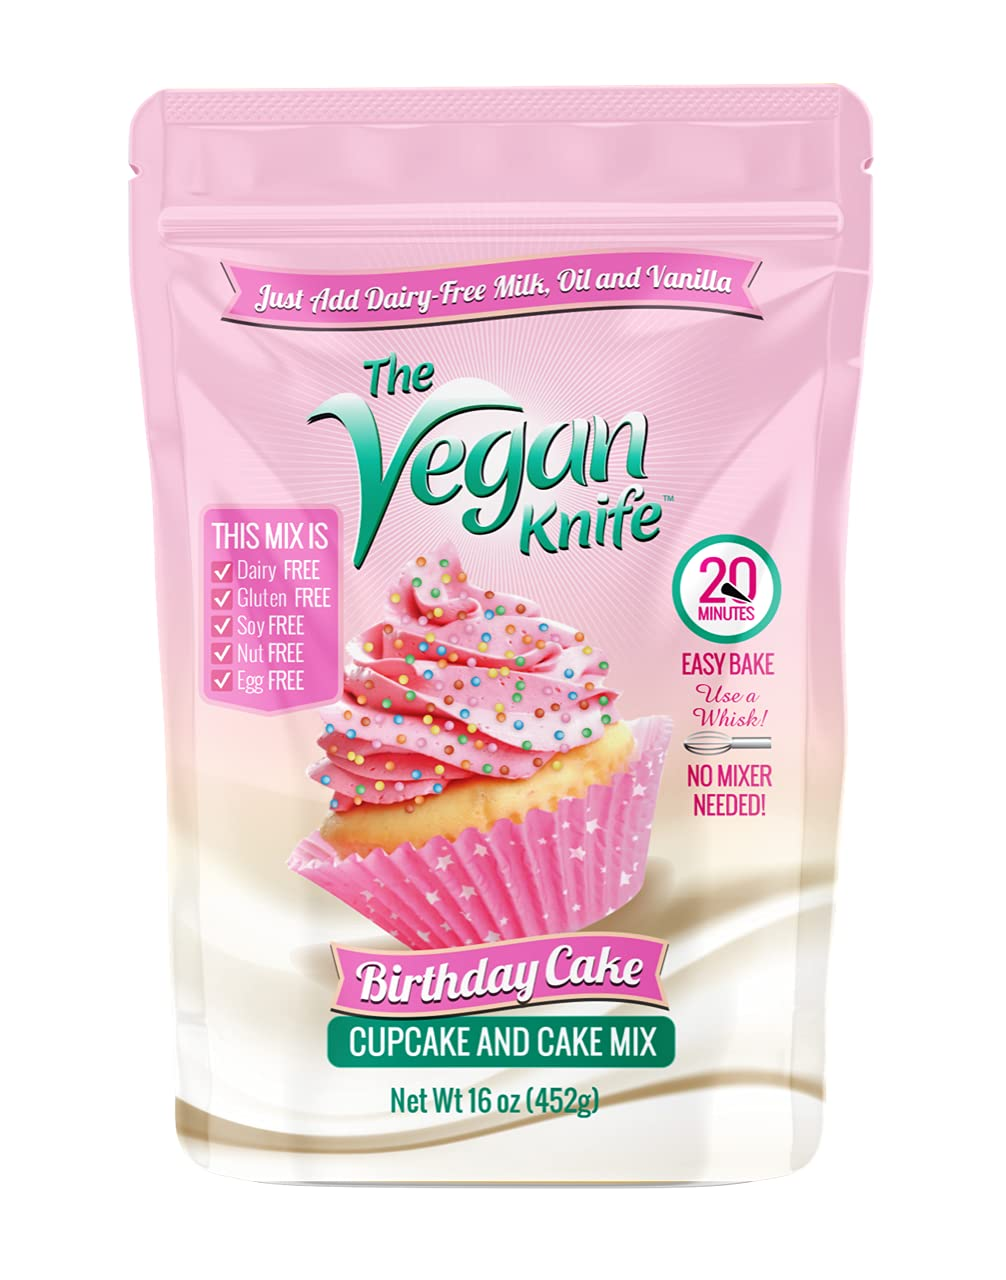 The Vegan Knife Gluten Free National products and Cake Wholesale Birthda Mix Cupcake